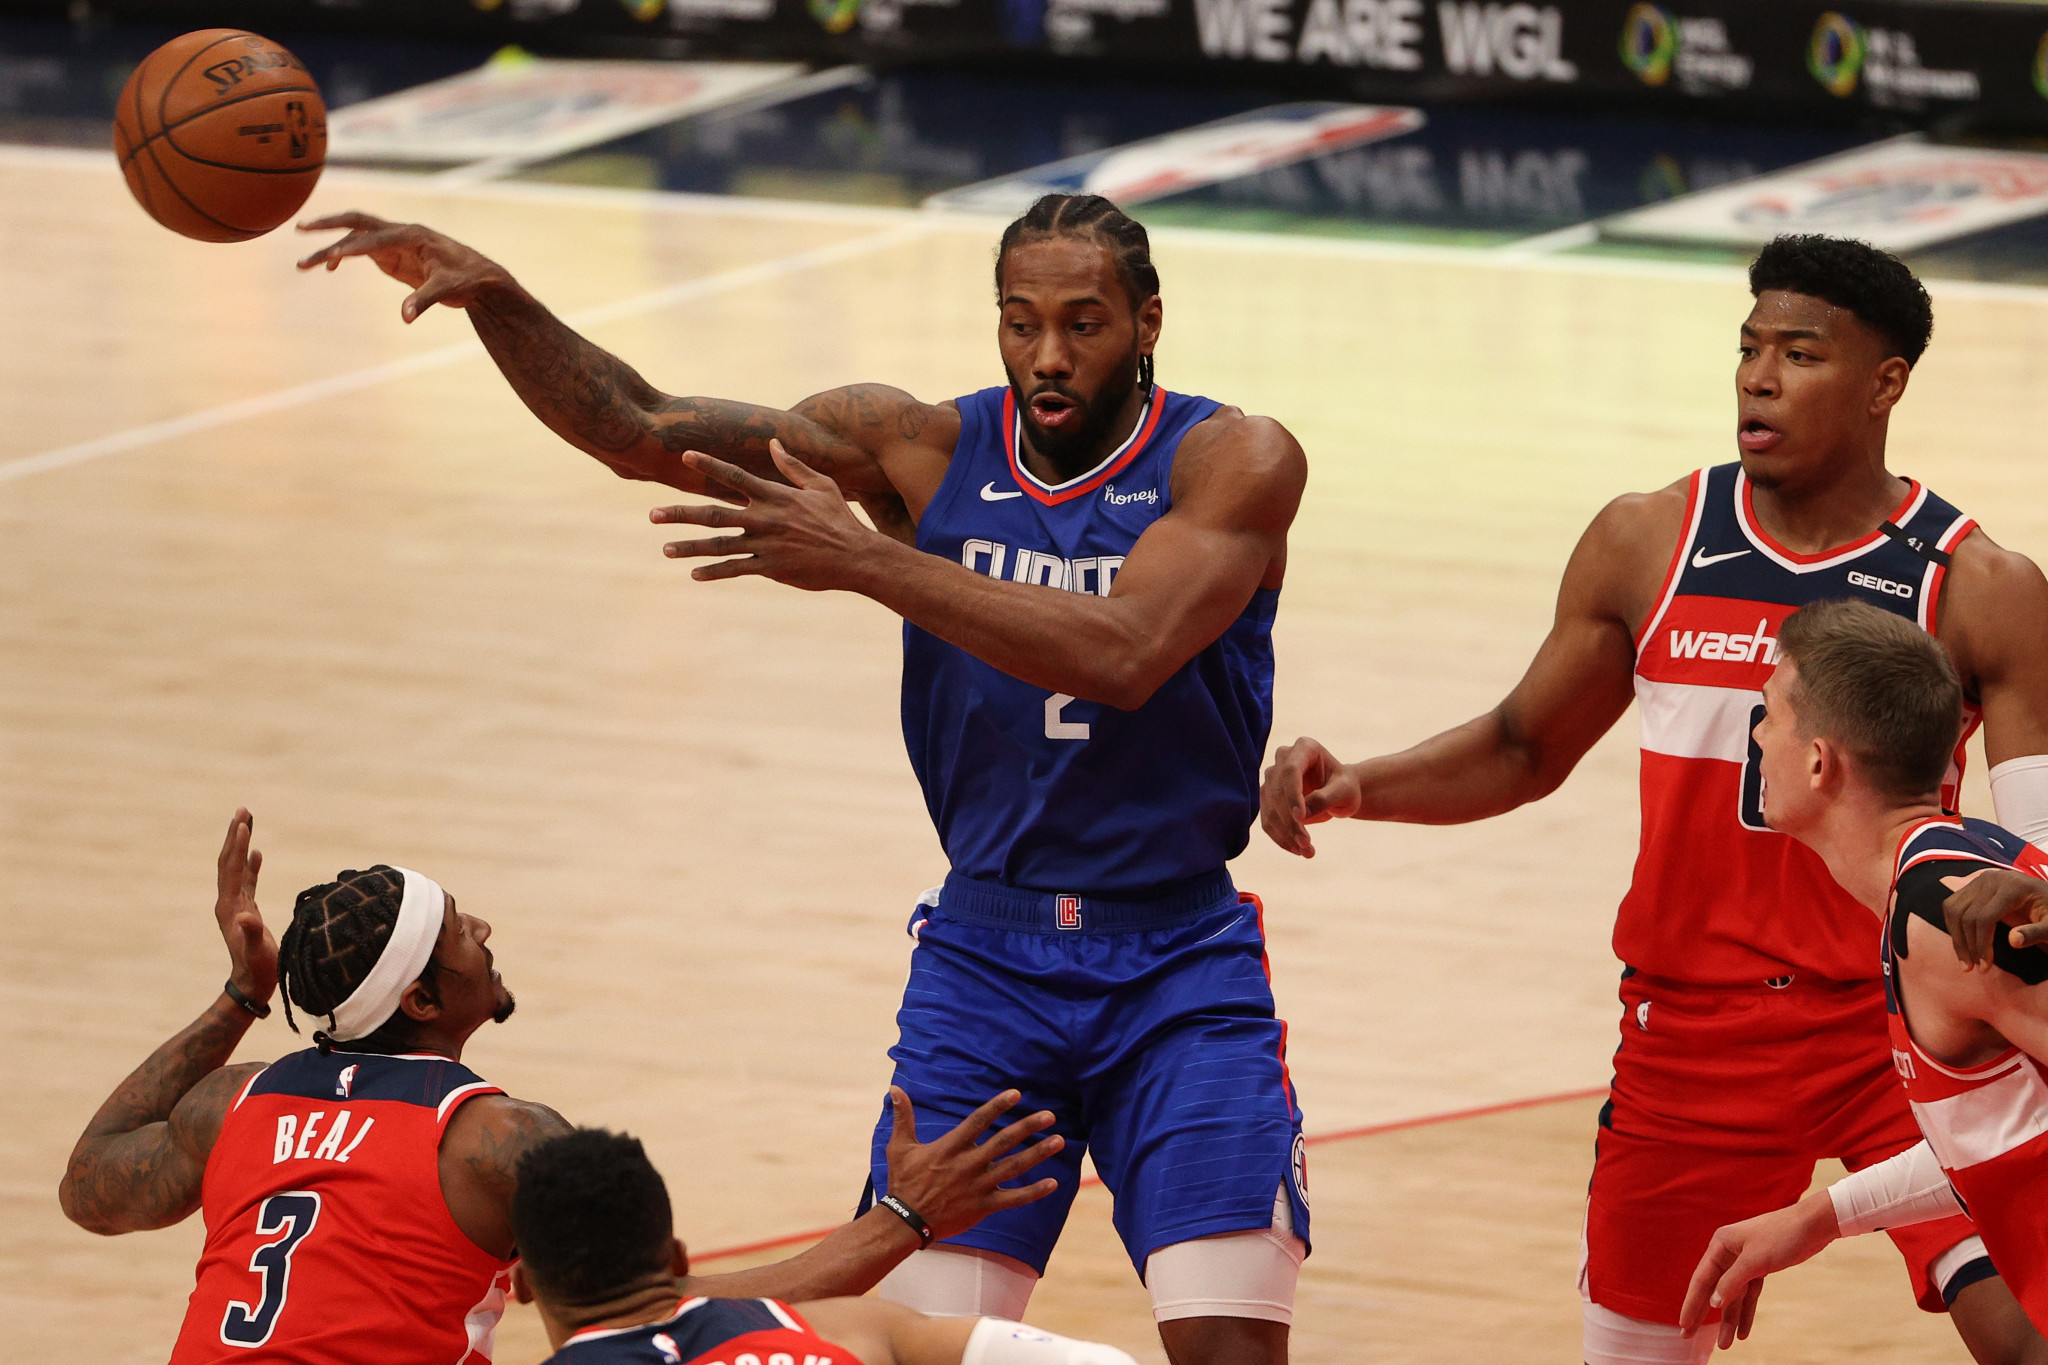 Los Angeles Clippers ace Kawhi Leonard is aiming to represent the United States at the Tokyo 2020 Olympics ©Getty Images